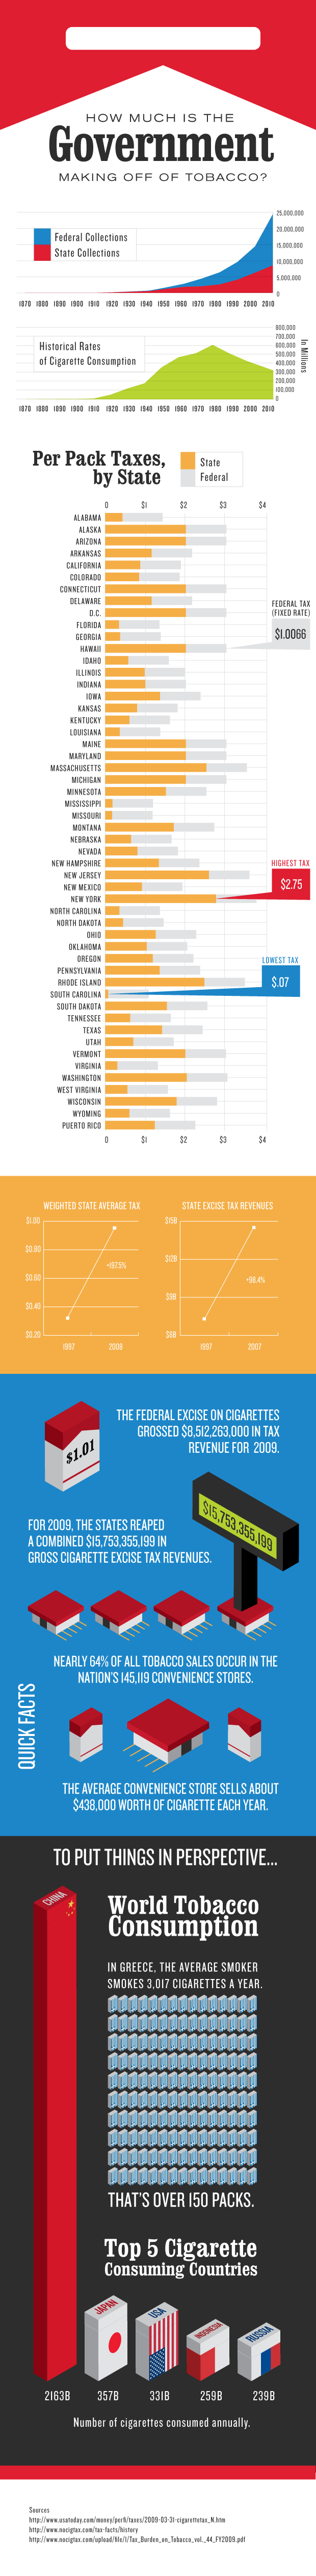 How Much is the Government Making f of Tobacco